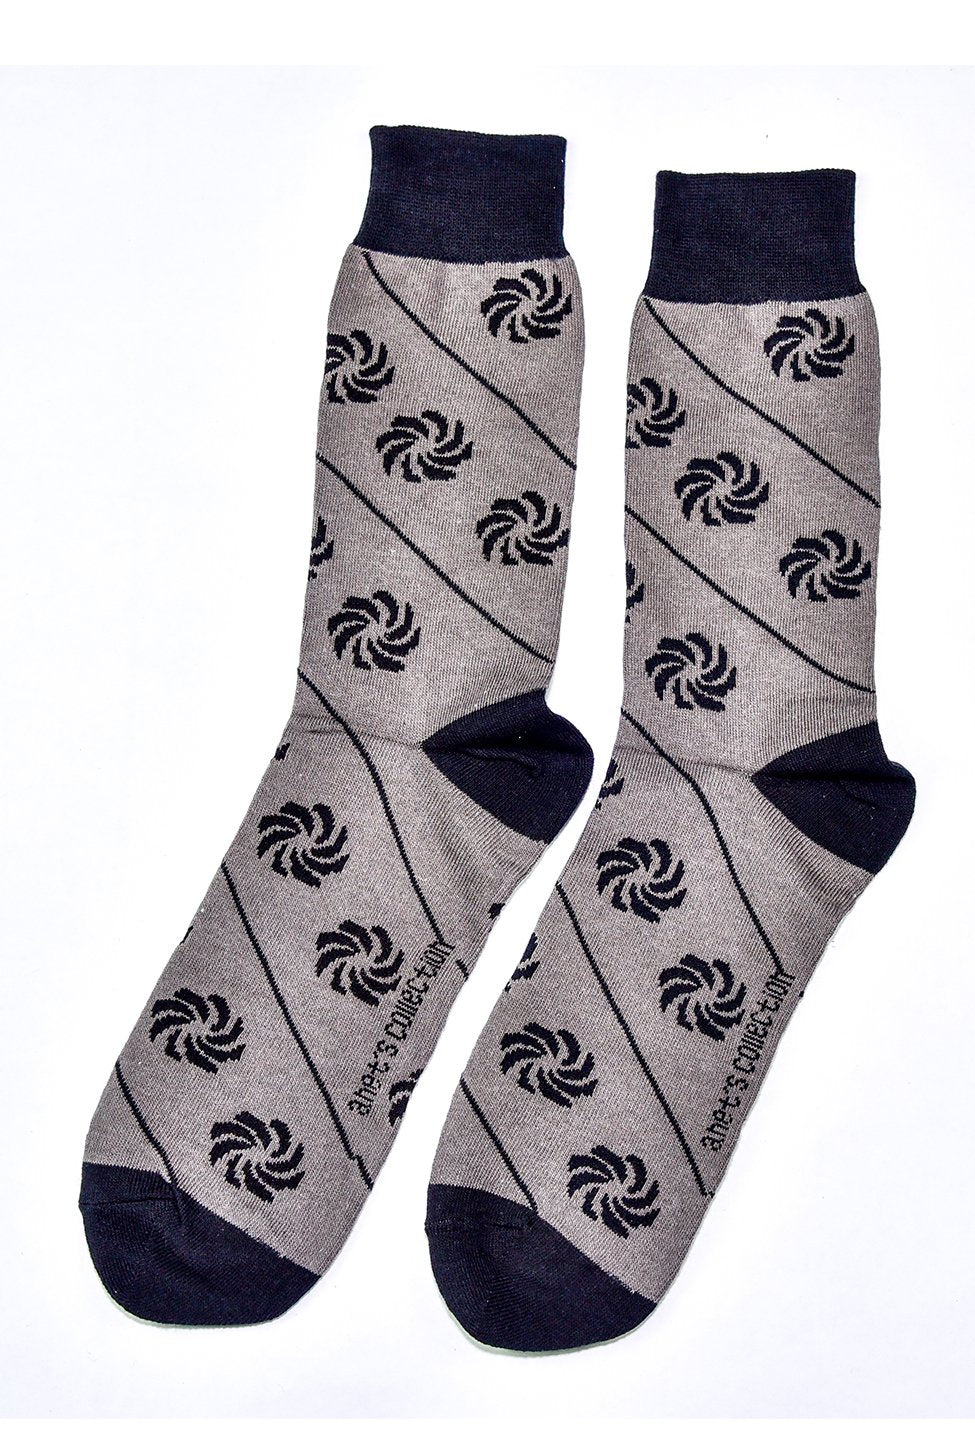 Eternity Socks - MIRAYJEWELRY